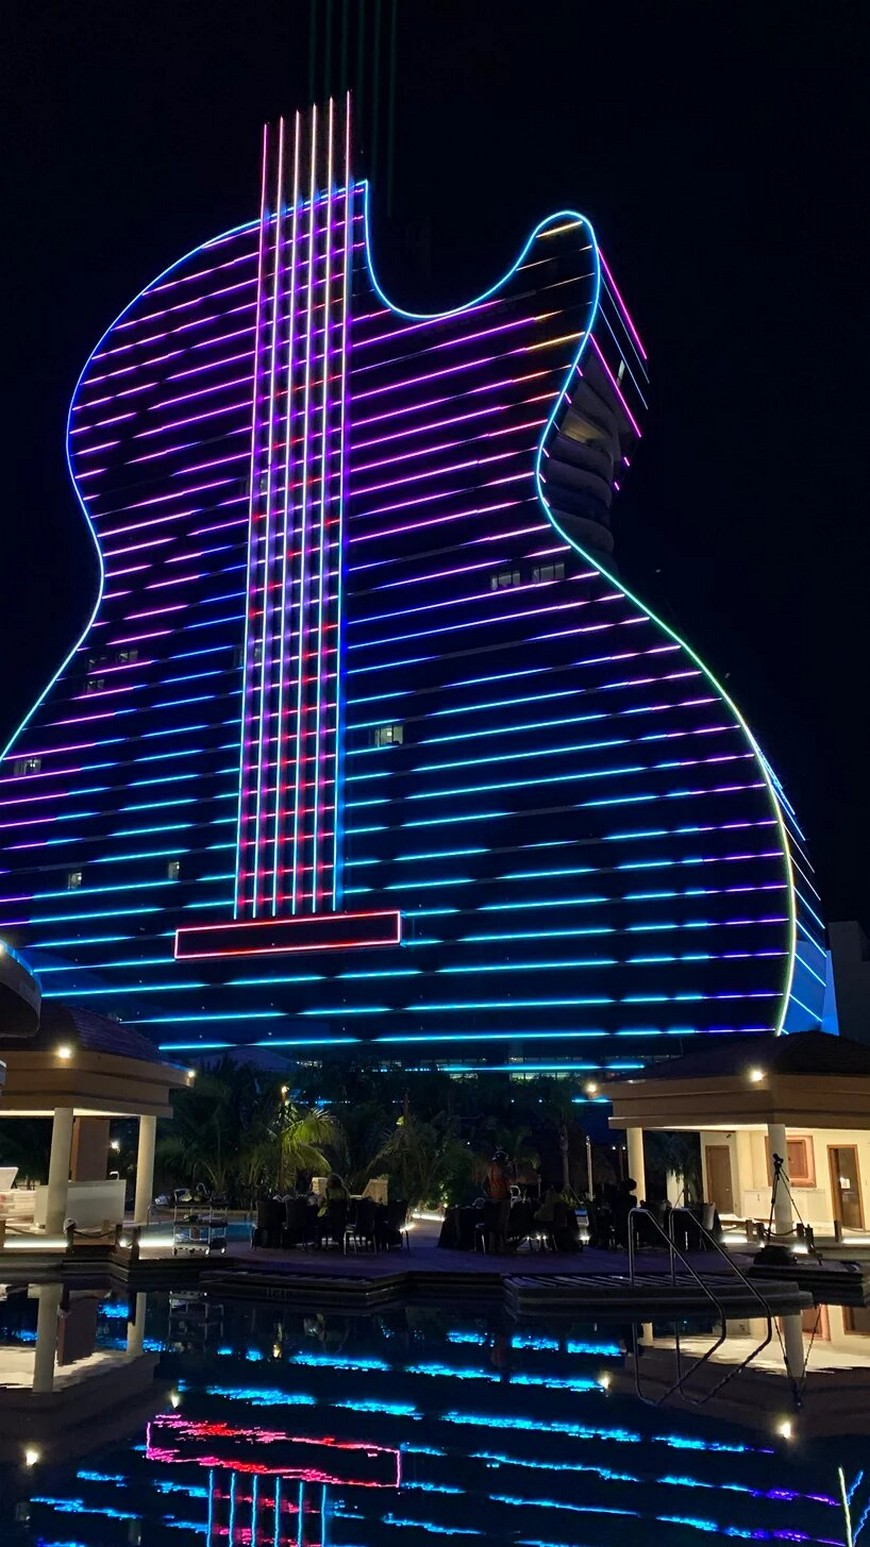 Hard Rock Hotel Opens in Florida With Guitar-Shaped Building